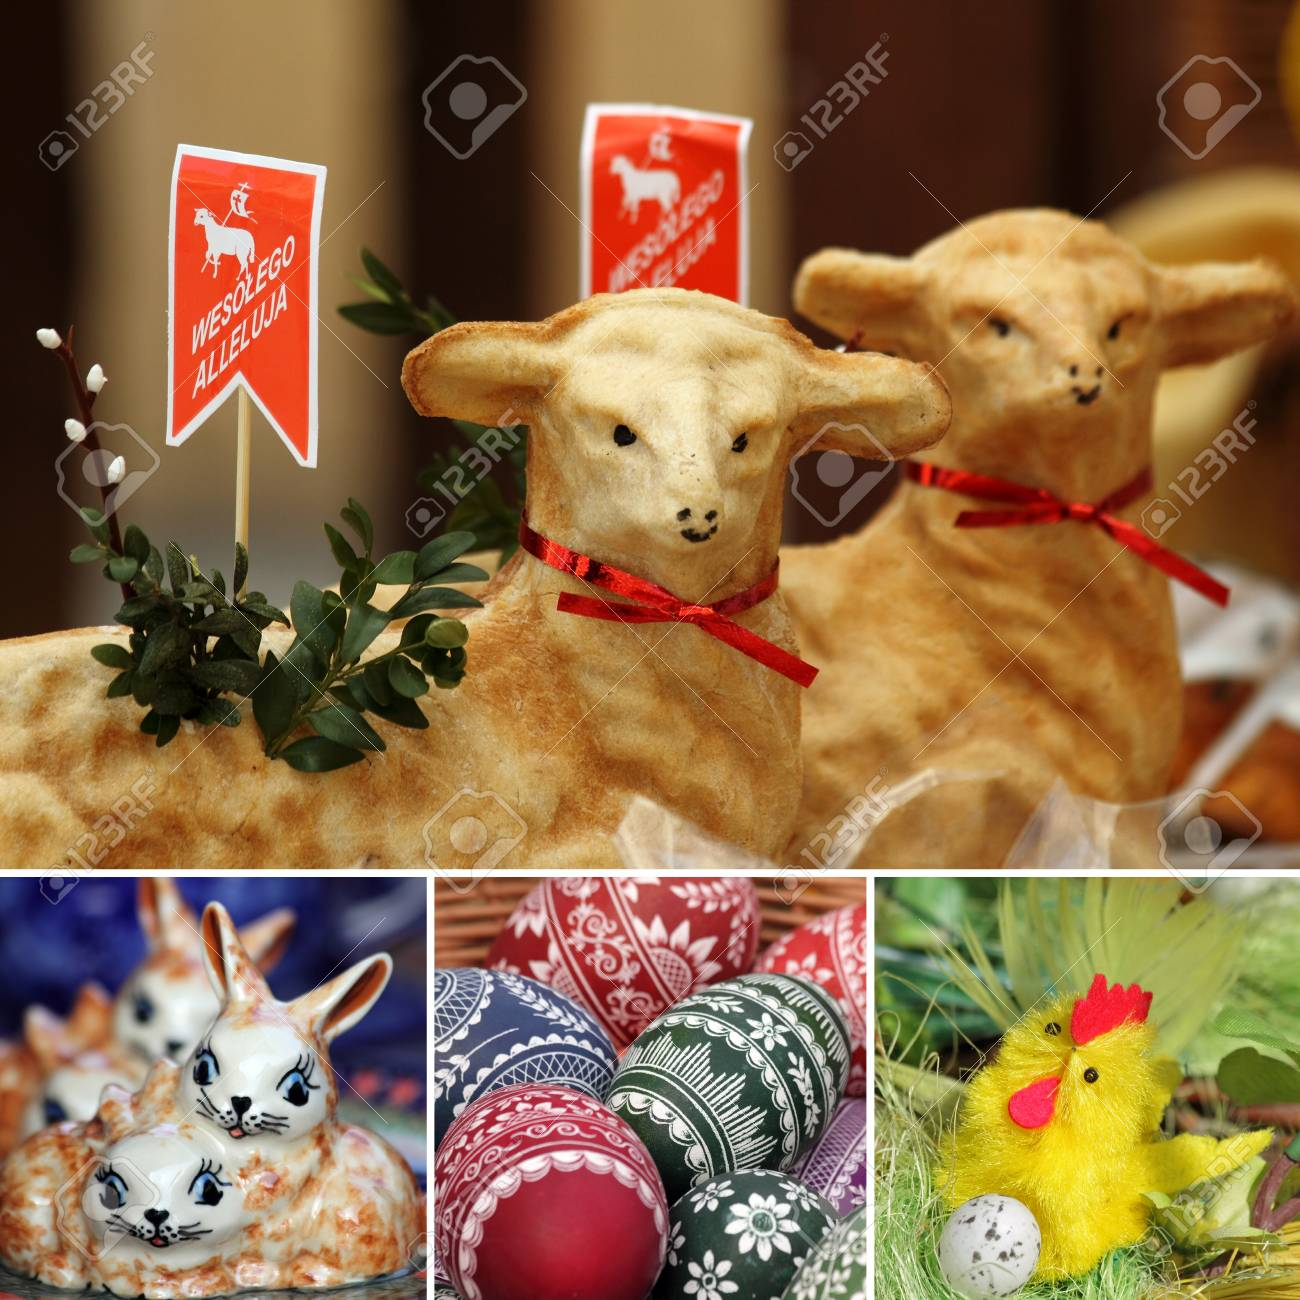 composition of easter decorations from Poland Stock Photo - 12532195